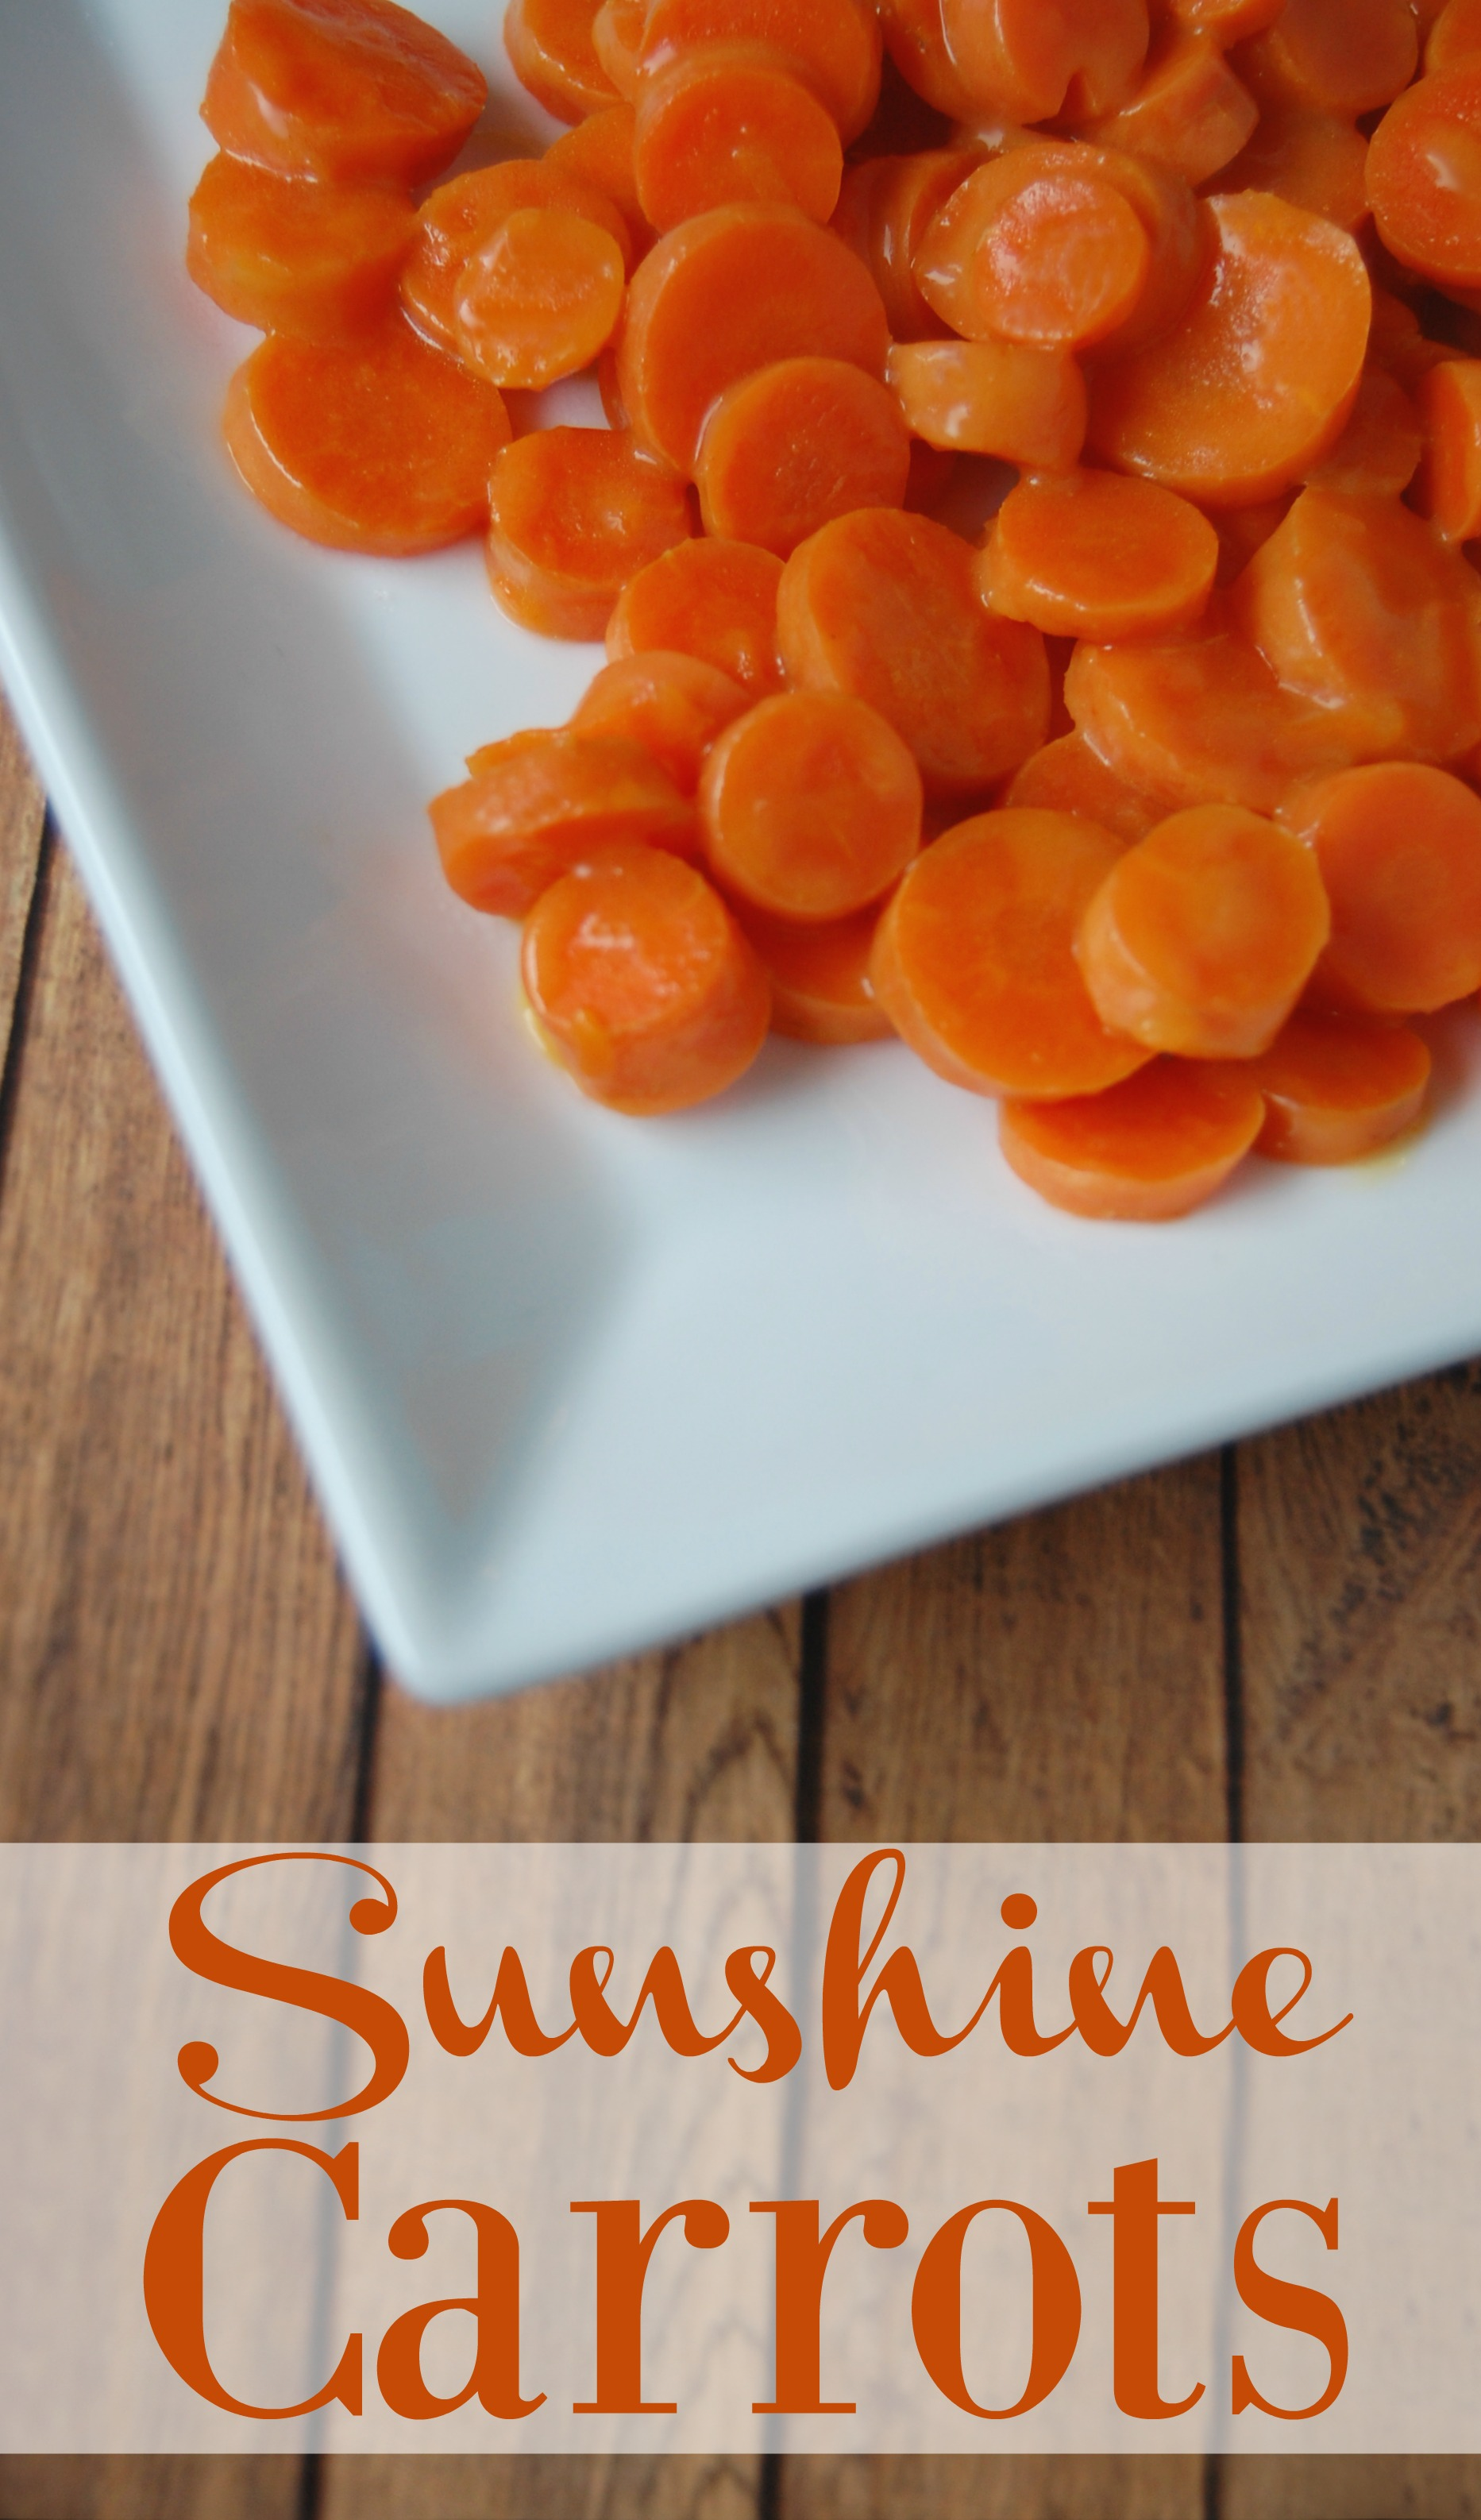 Sunshine Carrots - kid friendly, grain free, sugar free, and dairy free which also makes it great for those with allergies or those who are going Paleo or any other clean eating variations. It does use stevia which in my understanding makes it not Whole30 but you could leave it out if you wanted to; it just be not quite as sweet.